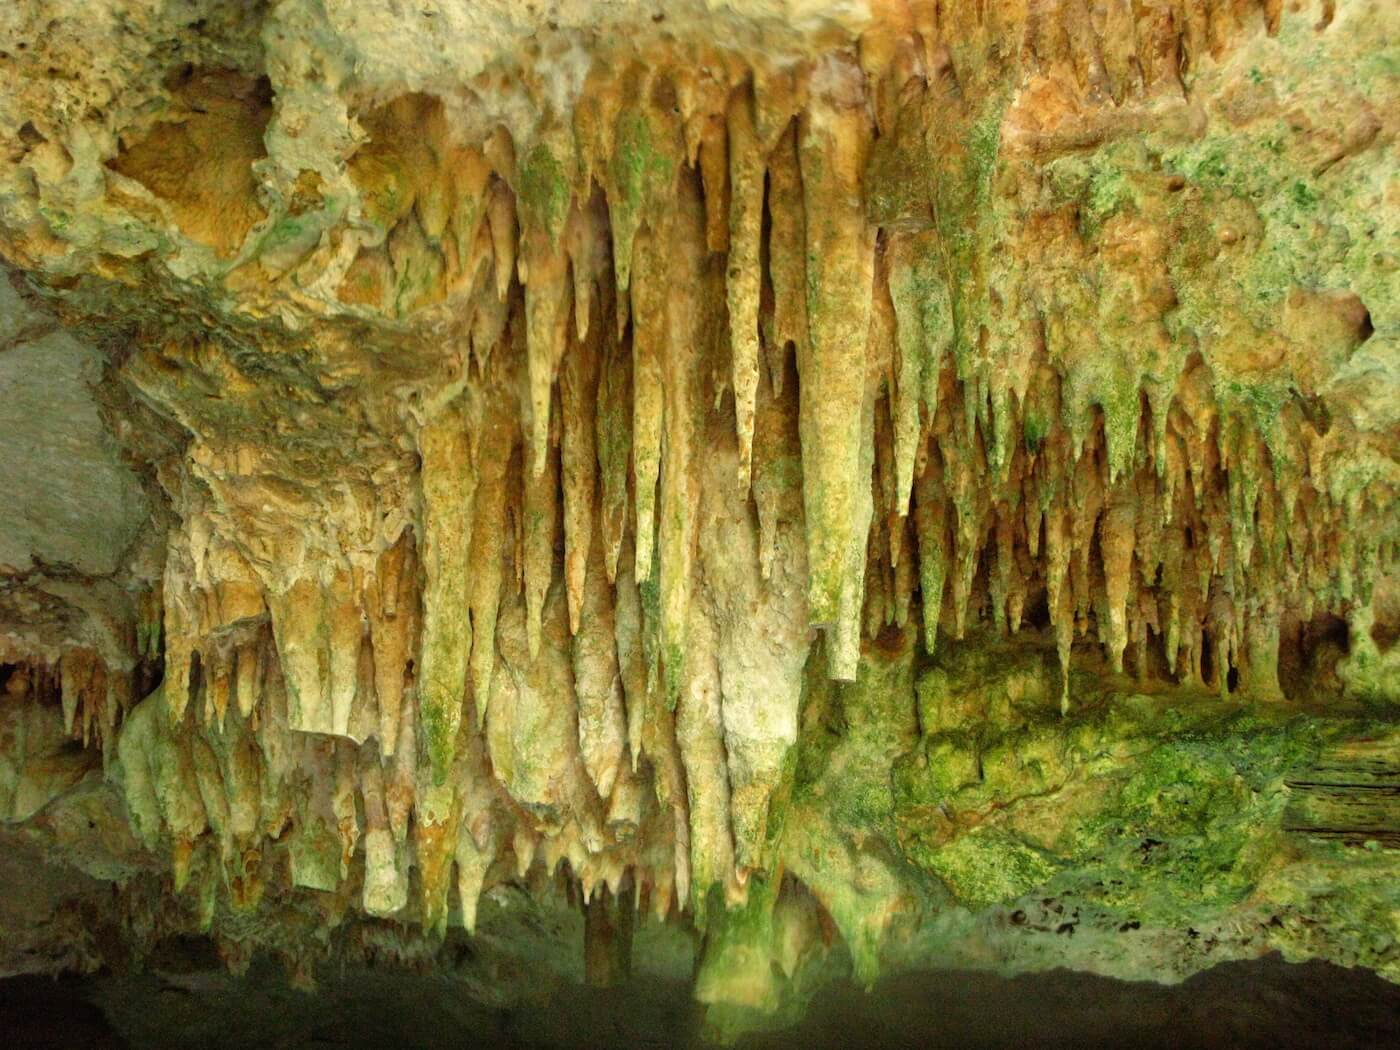 Cenotes and caves 2